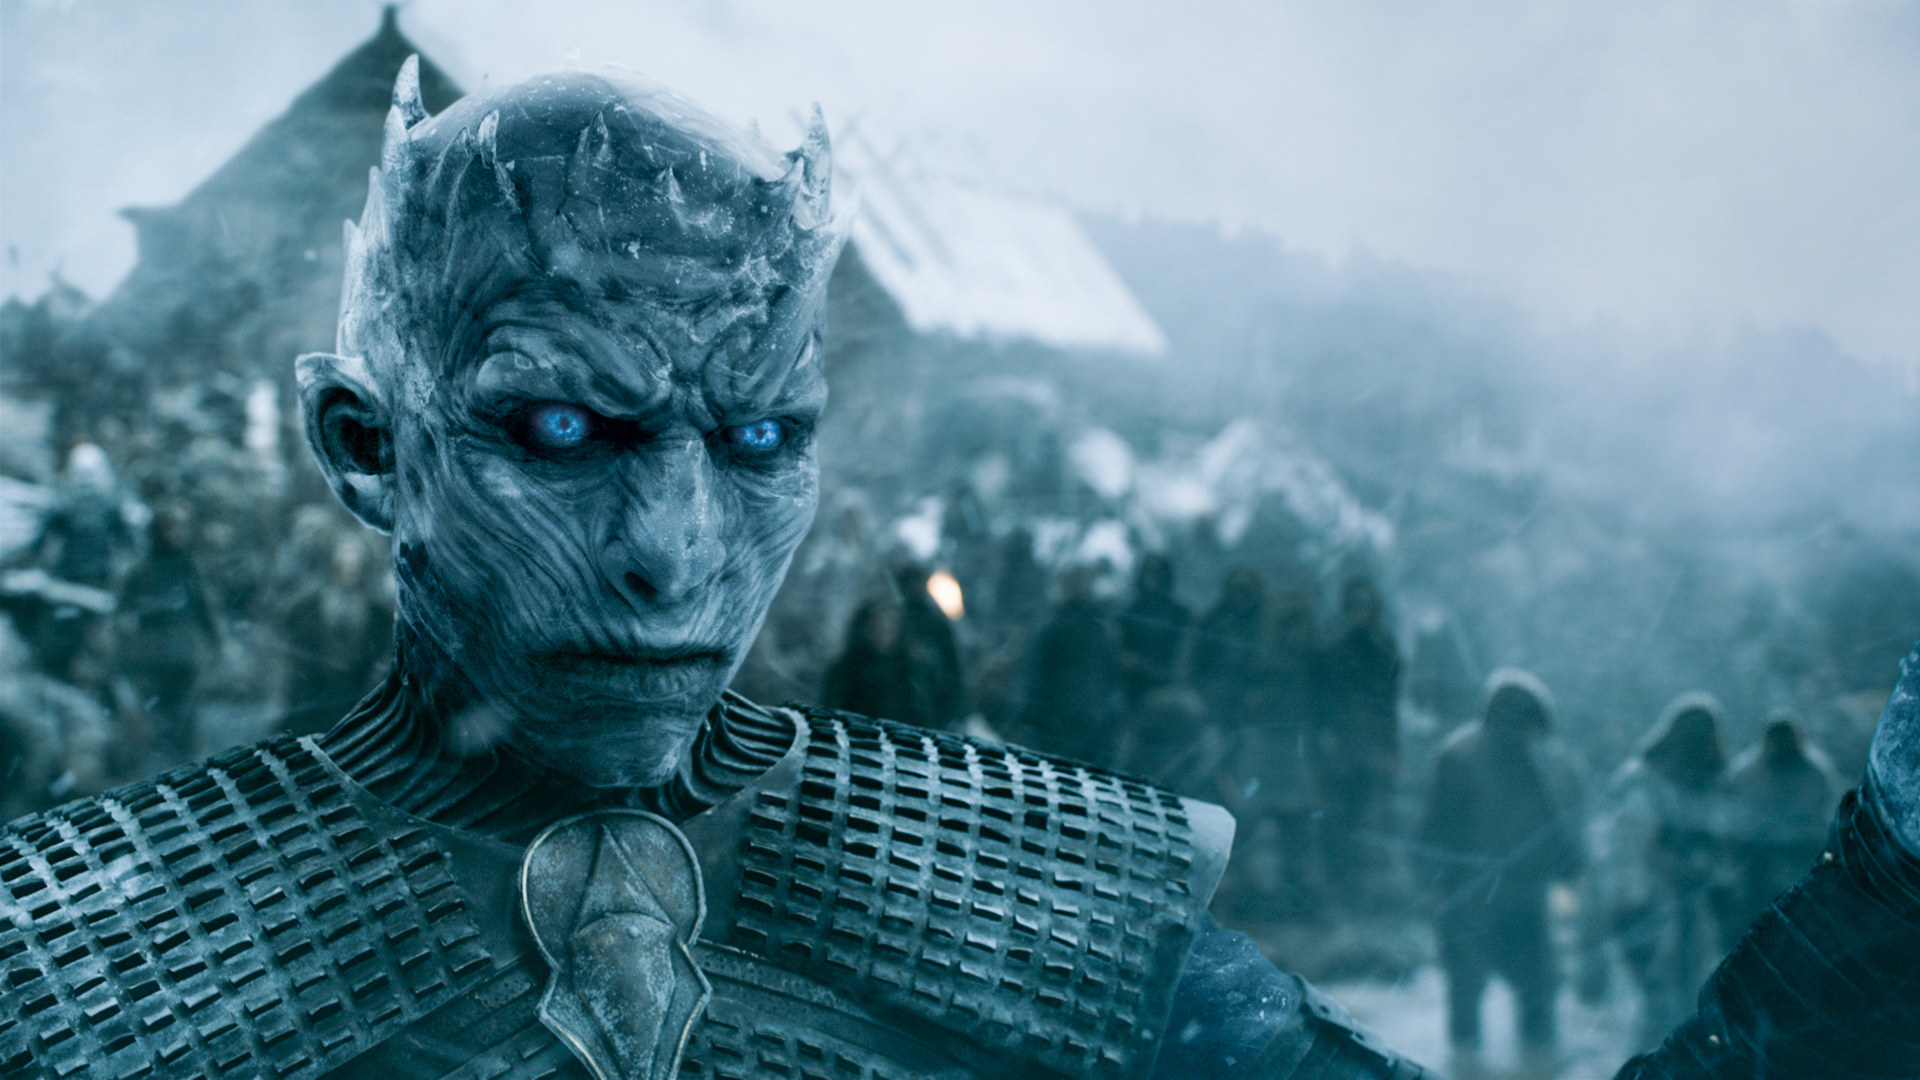 Still from Game of Thrones: close up of The Night King standing in front of hordes of wights at Hardhome